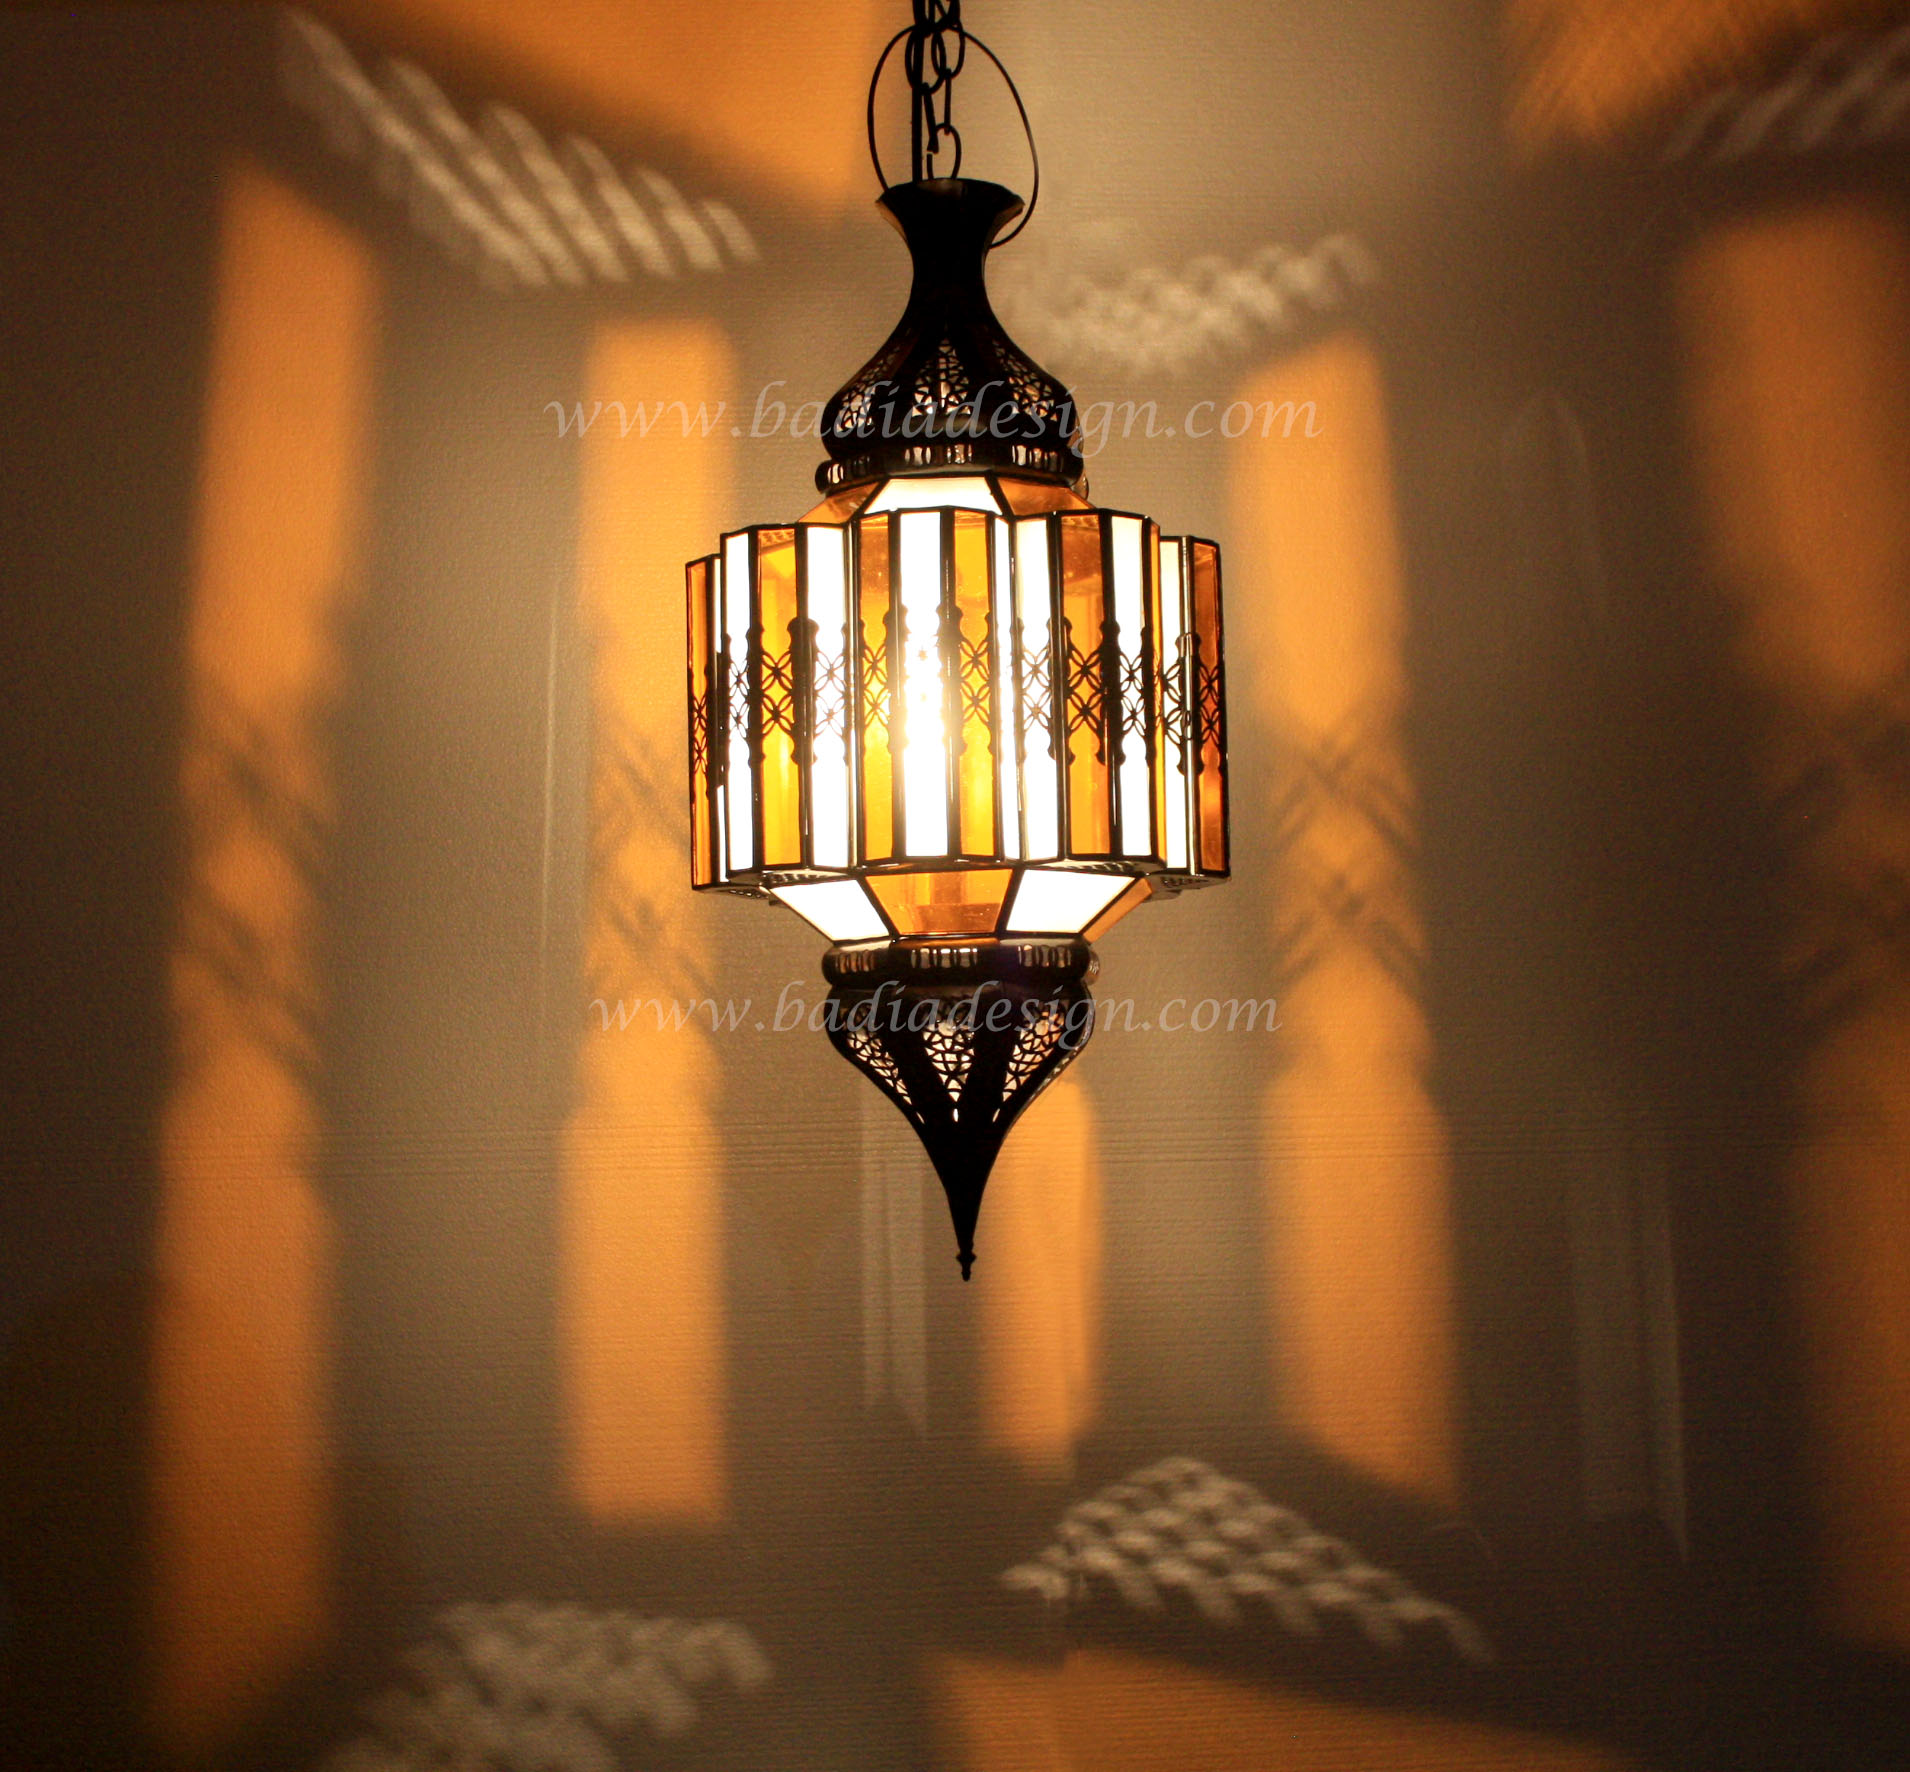 moroccan-lighting-chicago.jpg